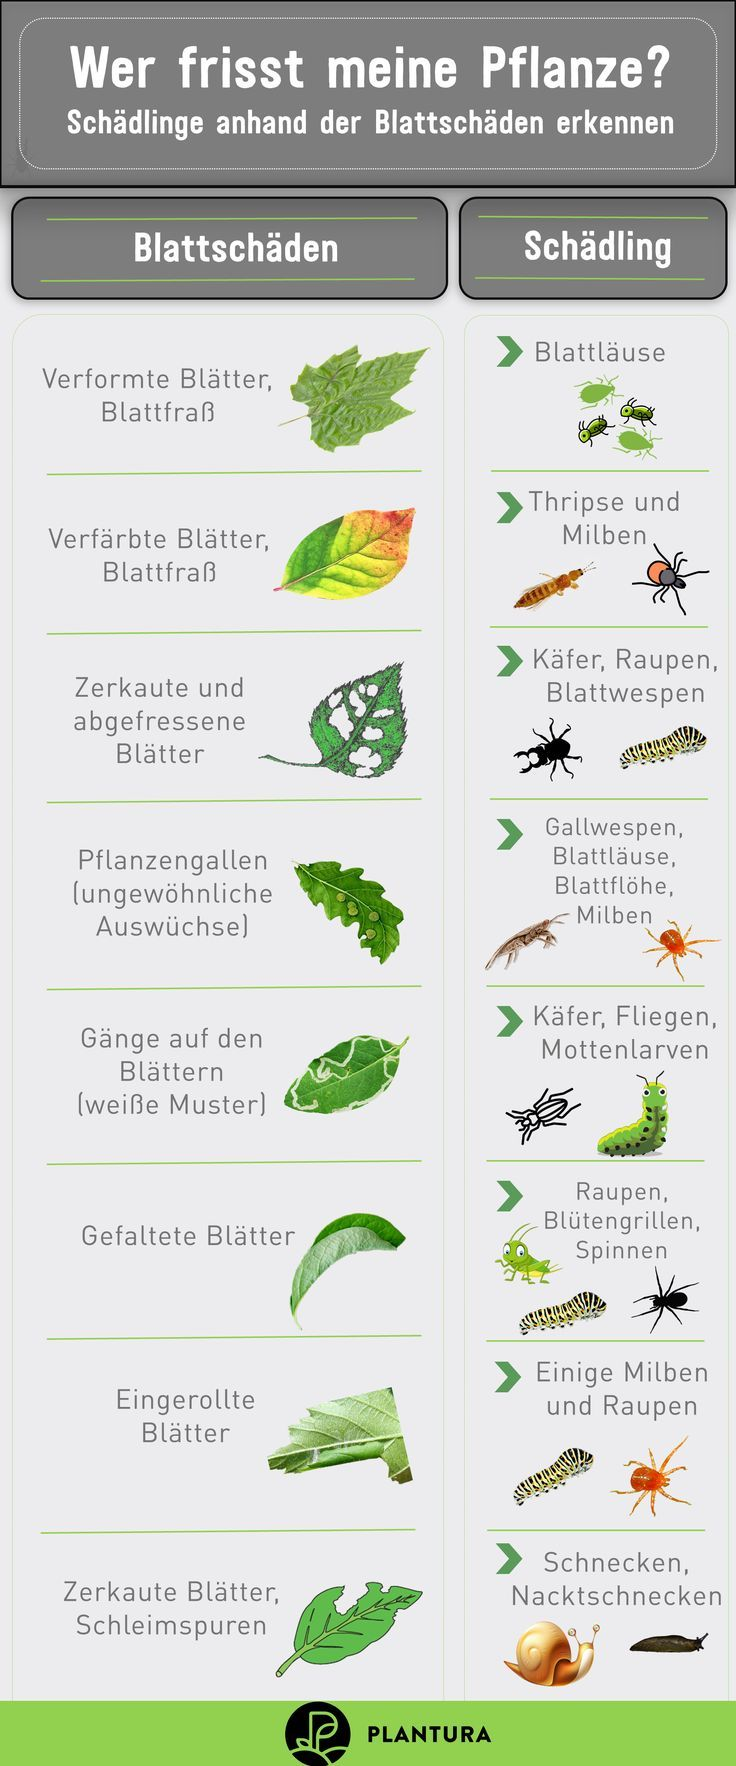 10 home remedies for pests in the garden